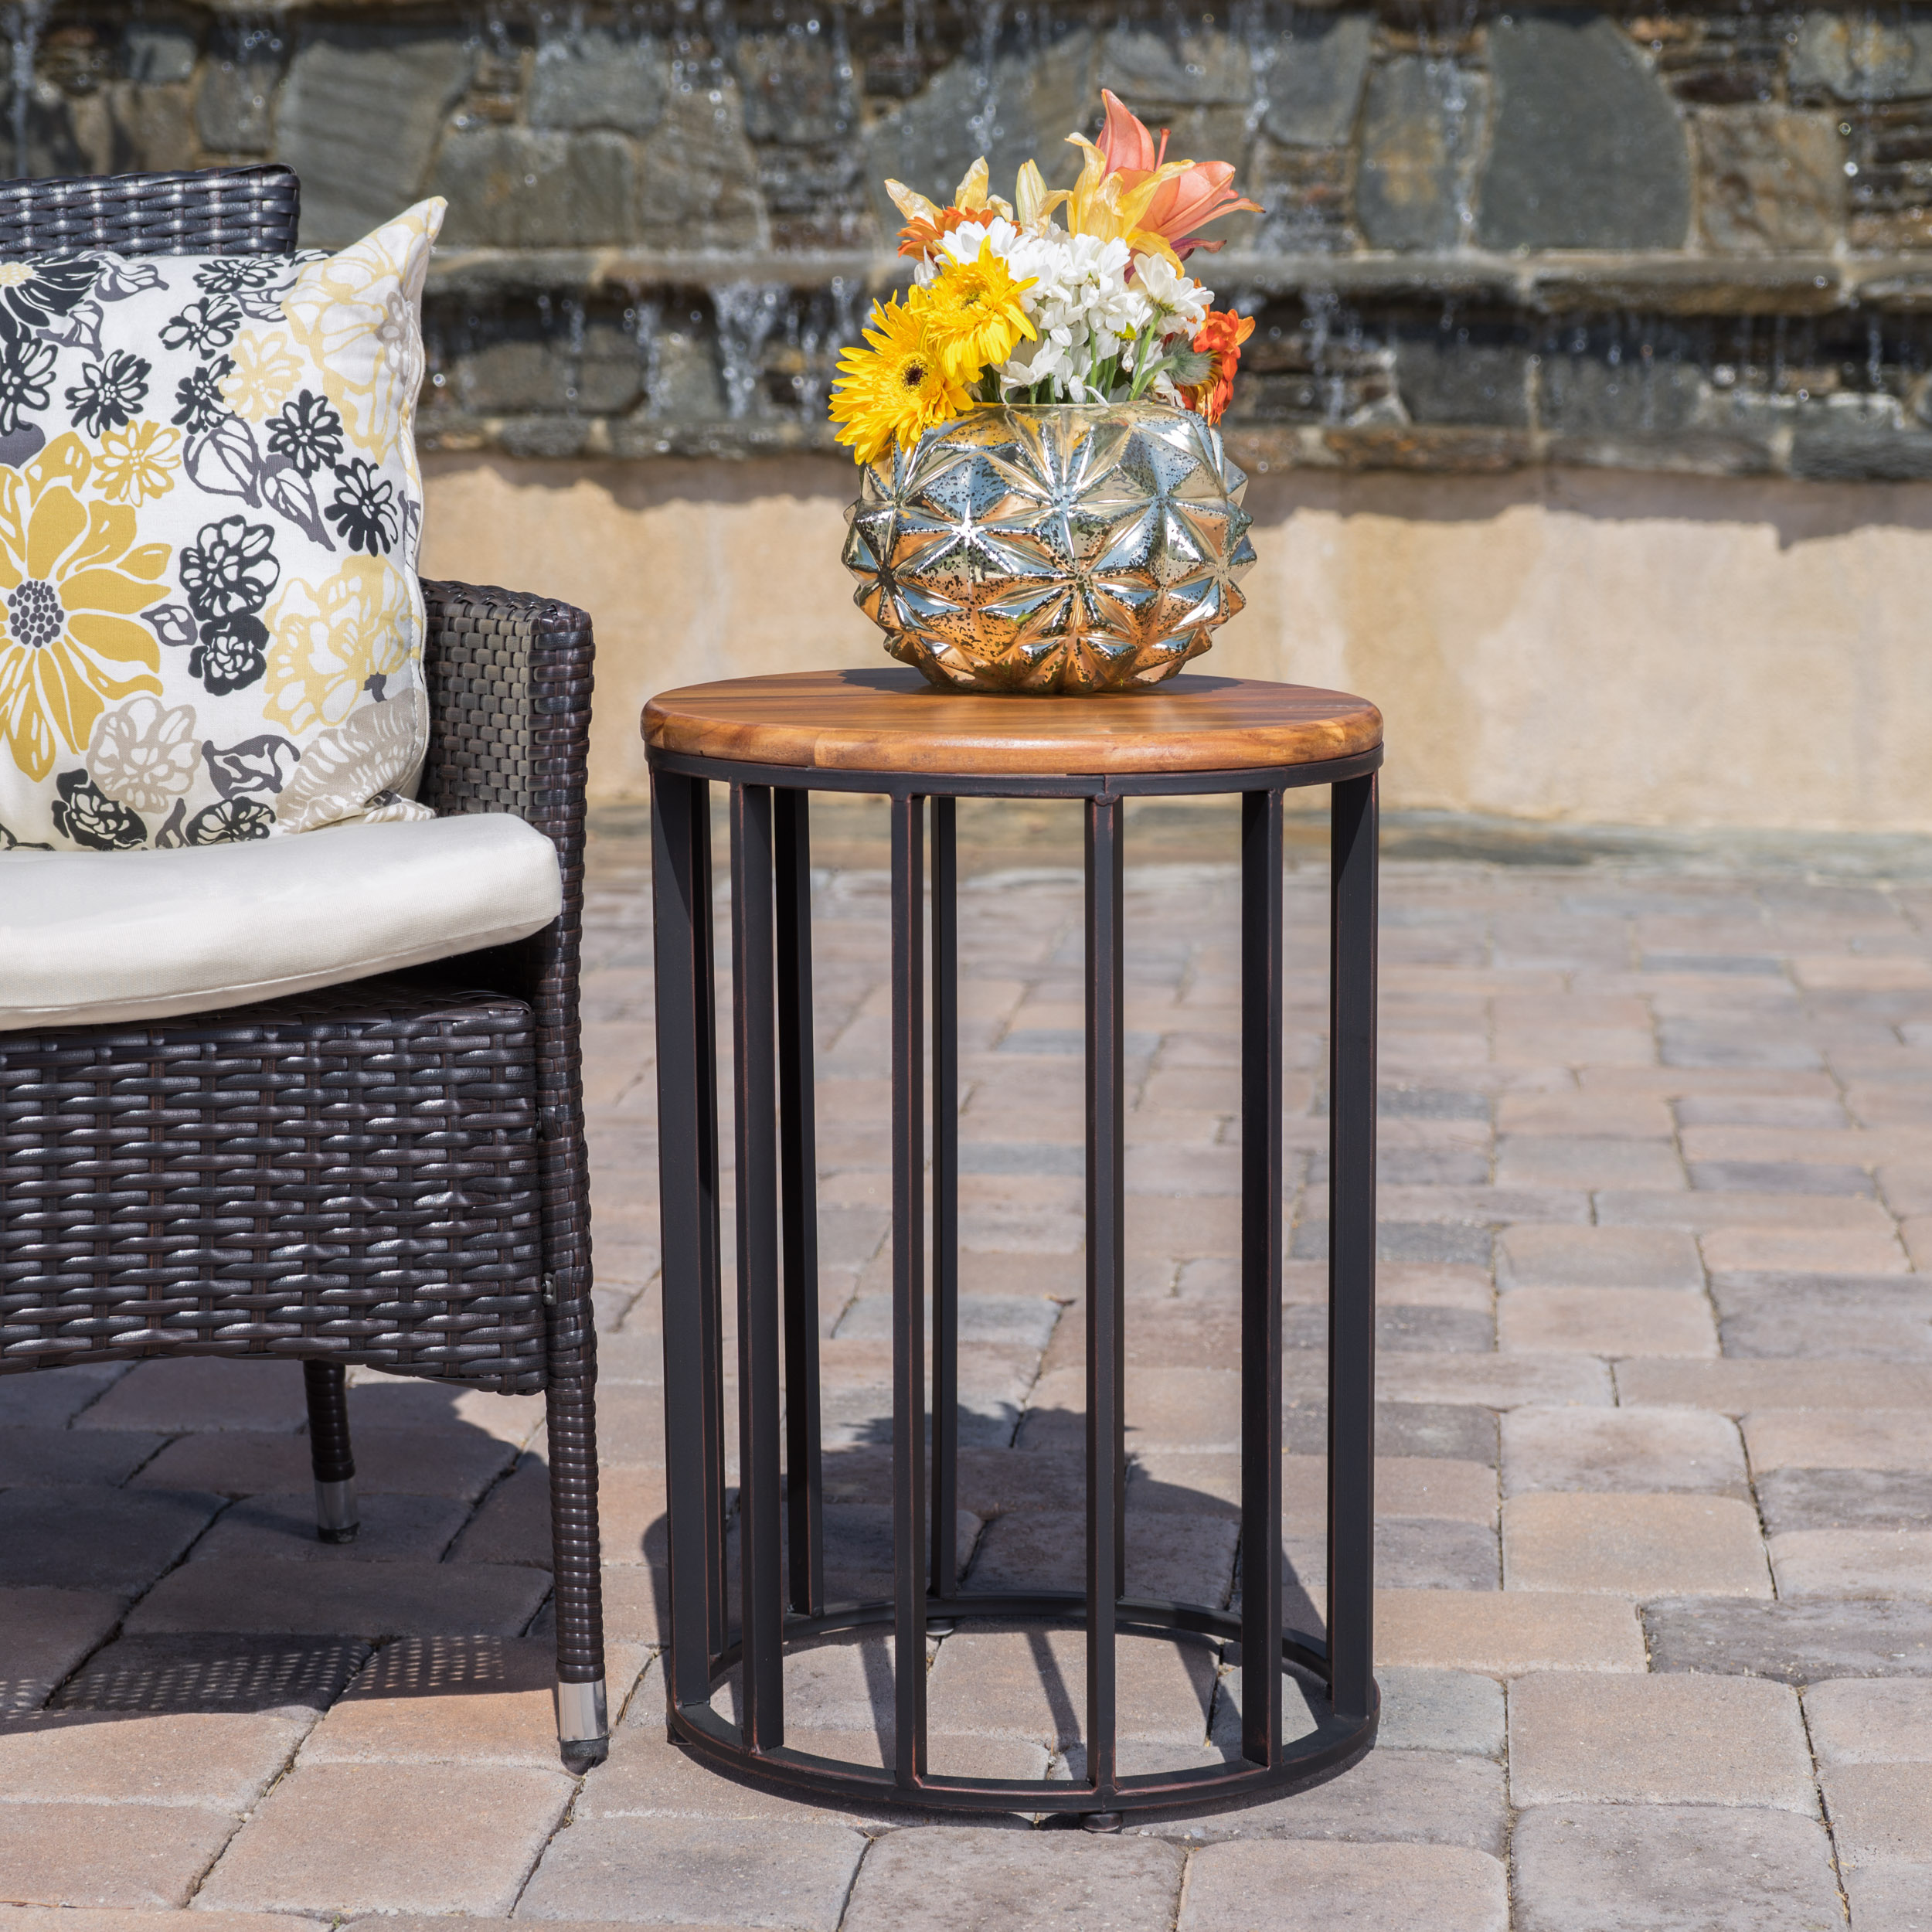 "Cascada Outdoor Acacia Wood 15"" Accent Table with Antique Finished Iron Accents, Natural Finish"